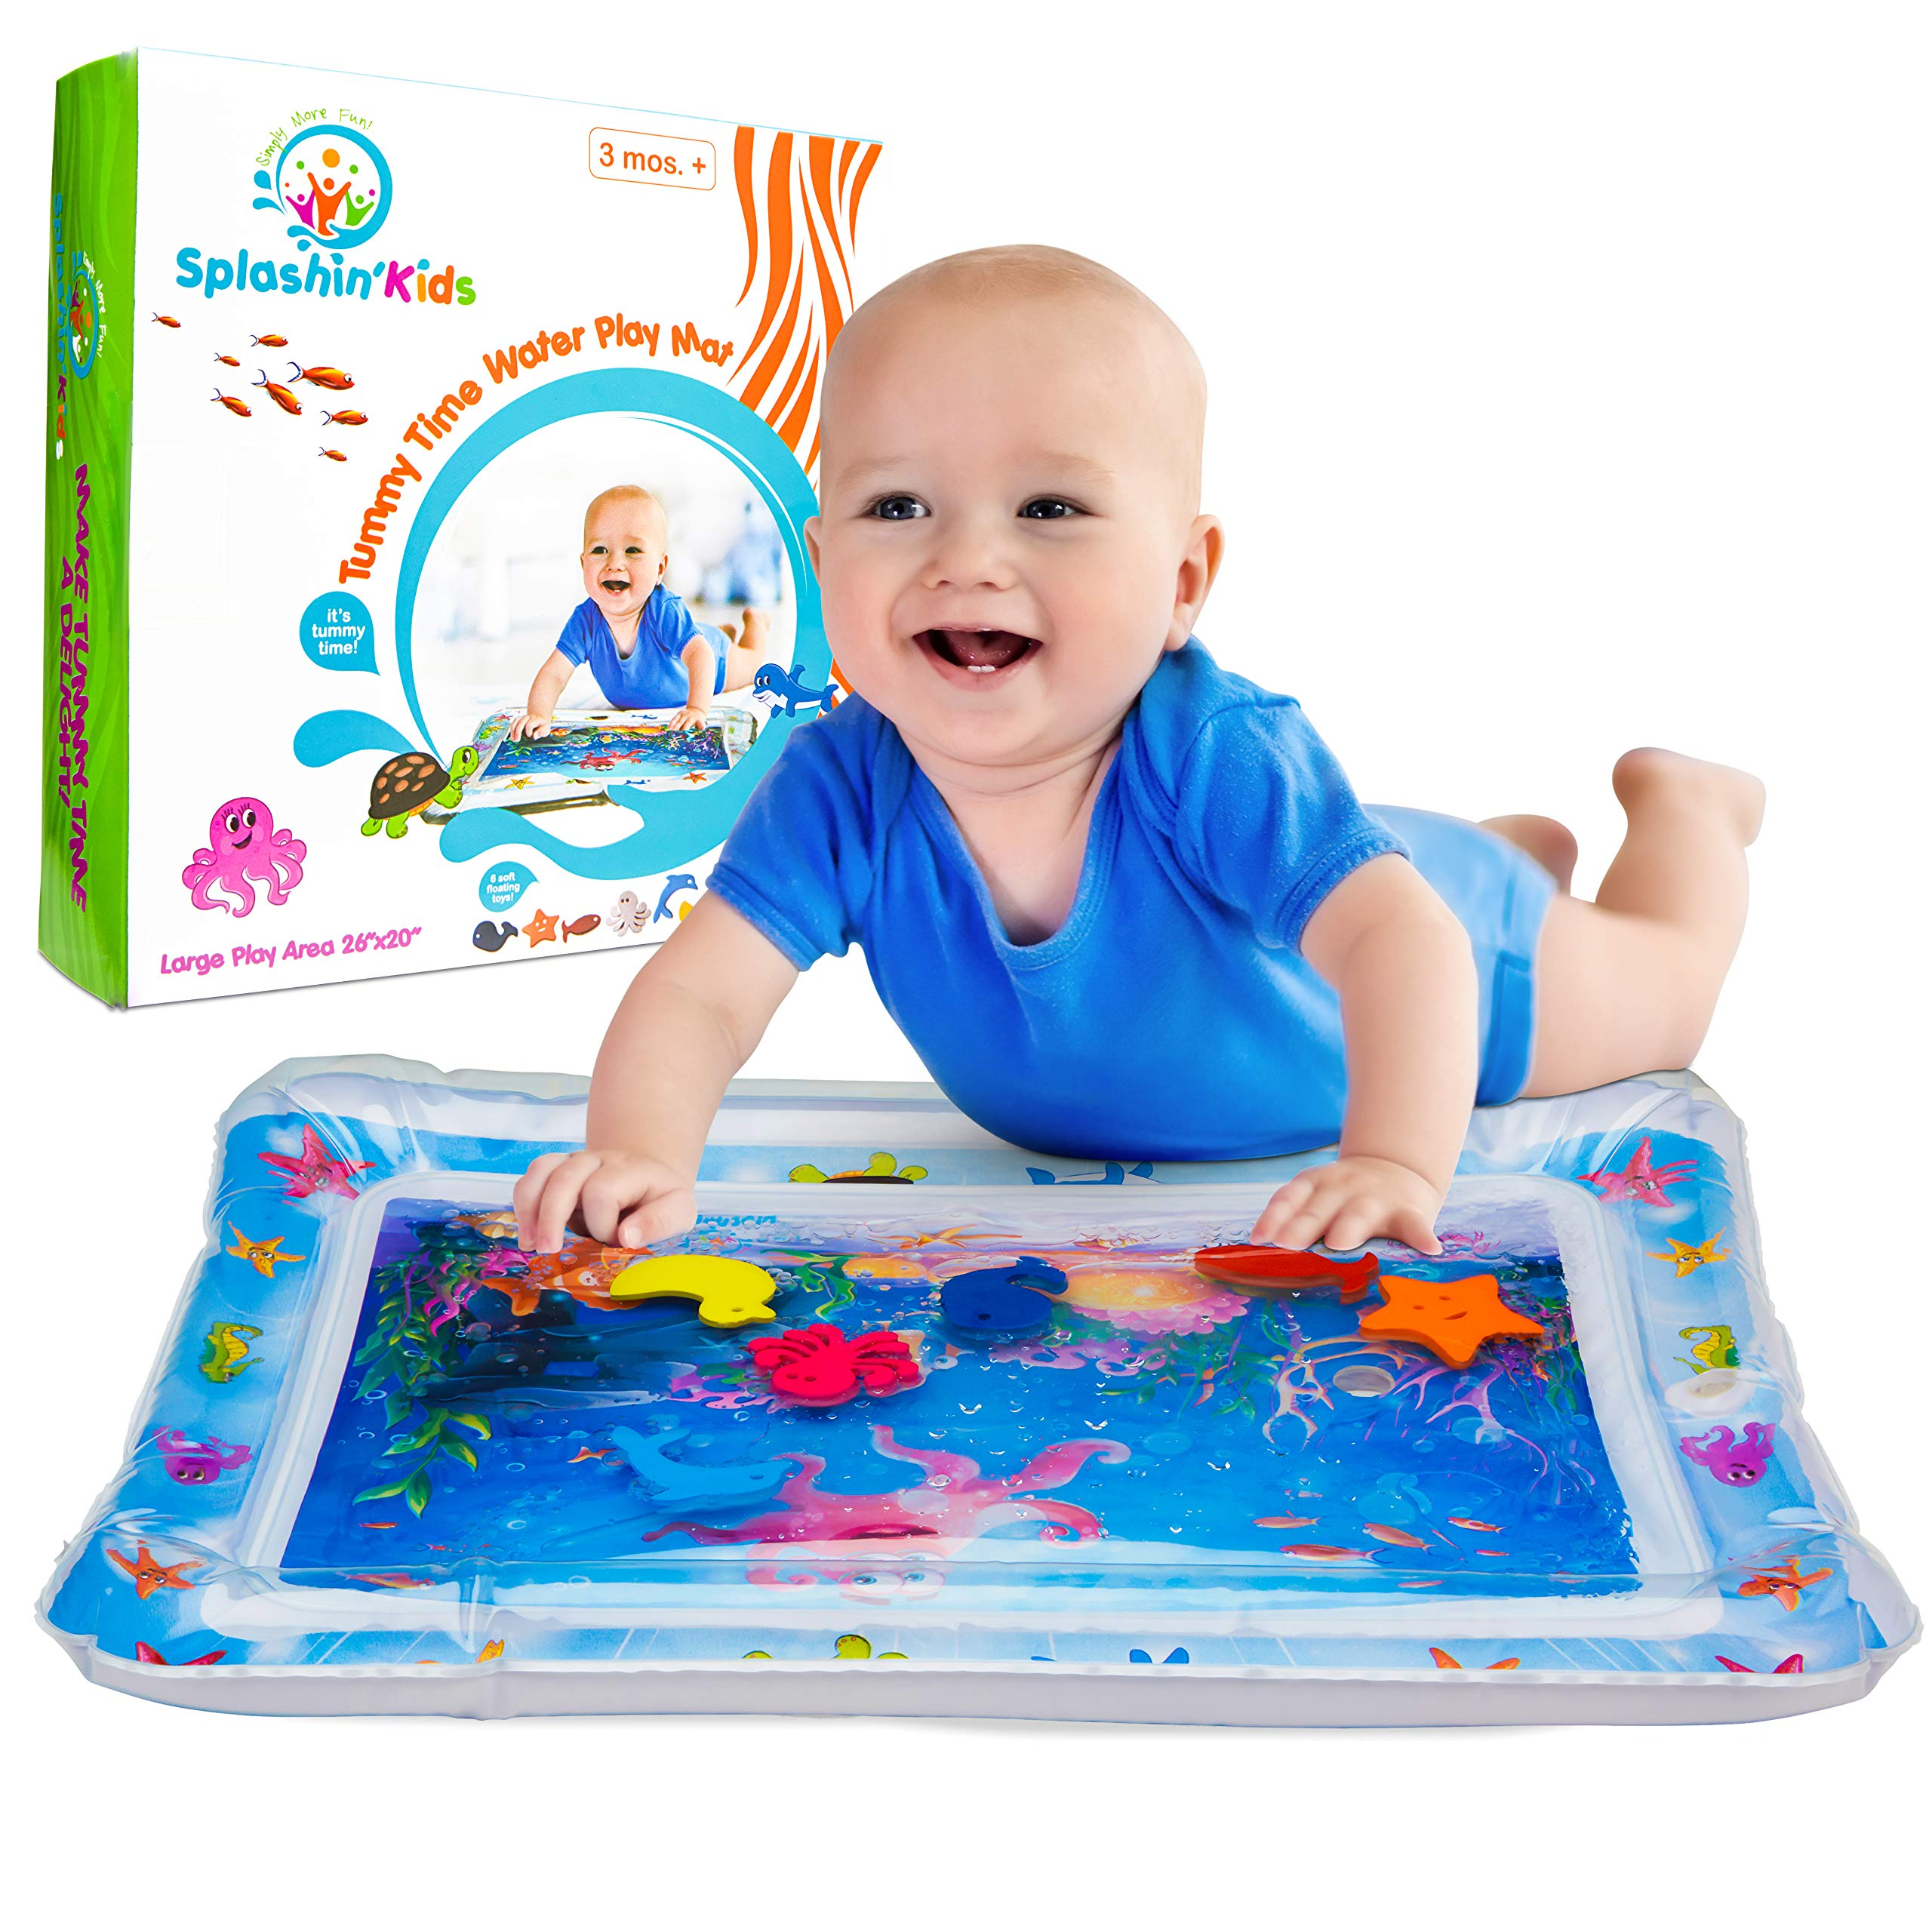 Splashin'kids Inflatable Tummy Time Premium Water mat for Infants & Toddlers is The Perfect Fun time Play Activity Center for Your Baby's Stimulation and Growth by Splashin'kids (Image #1)